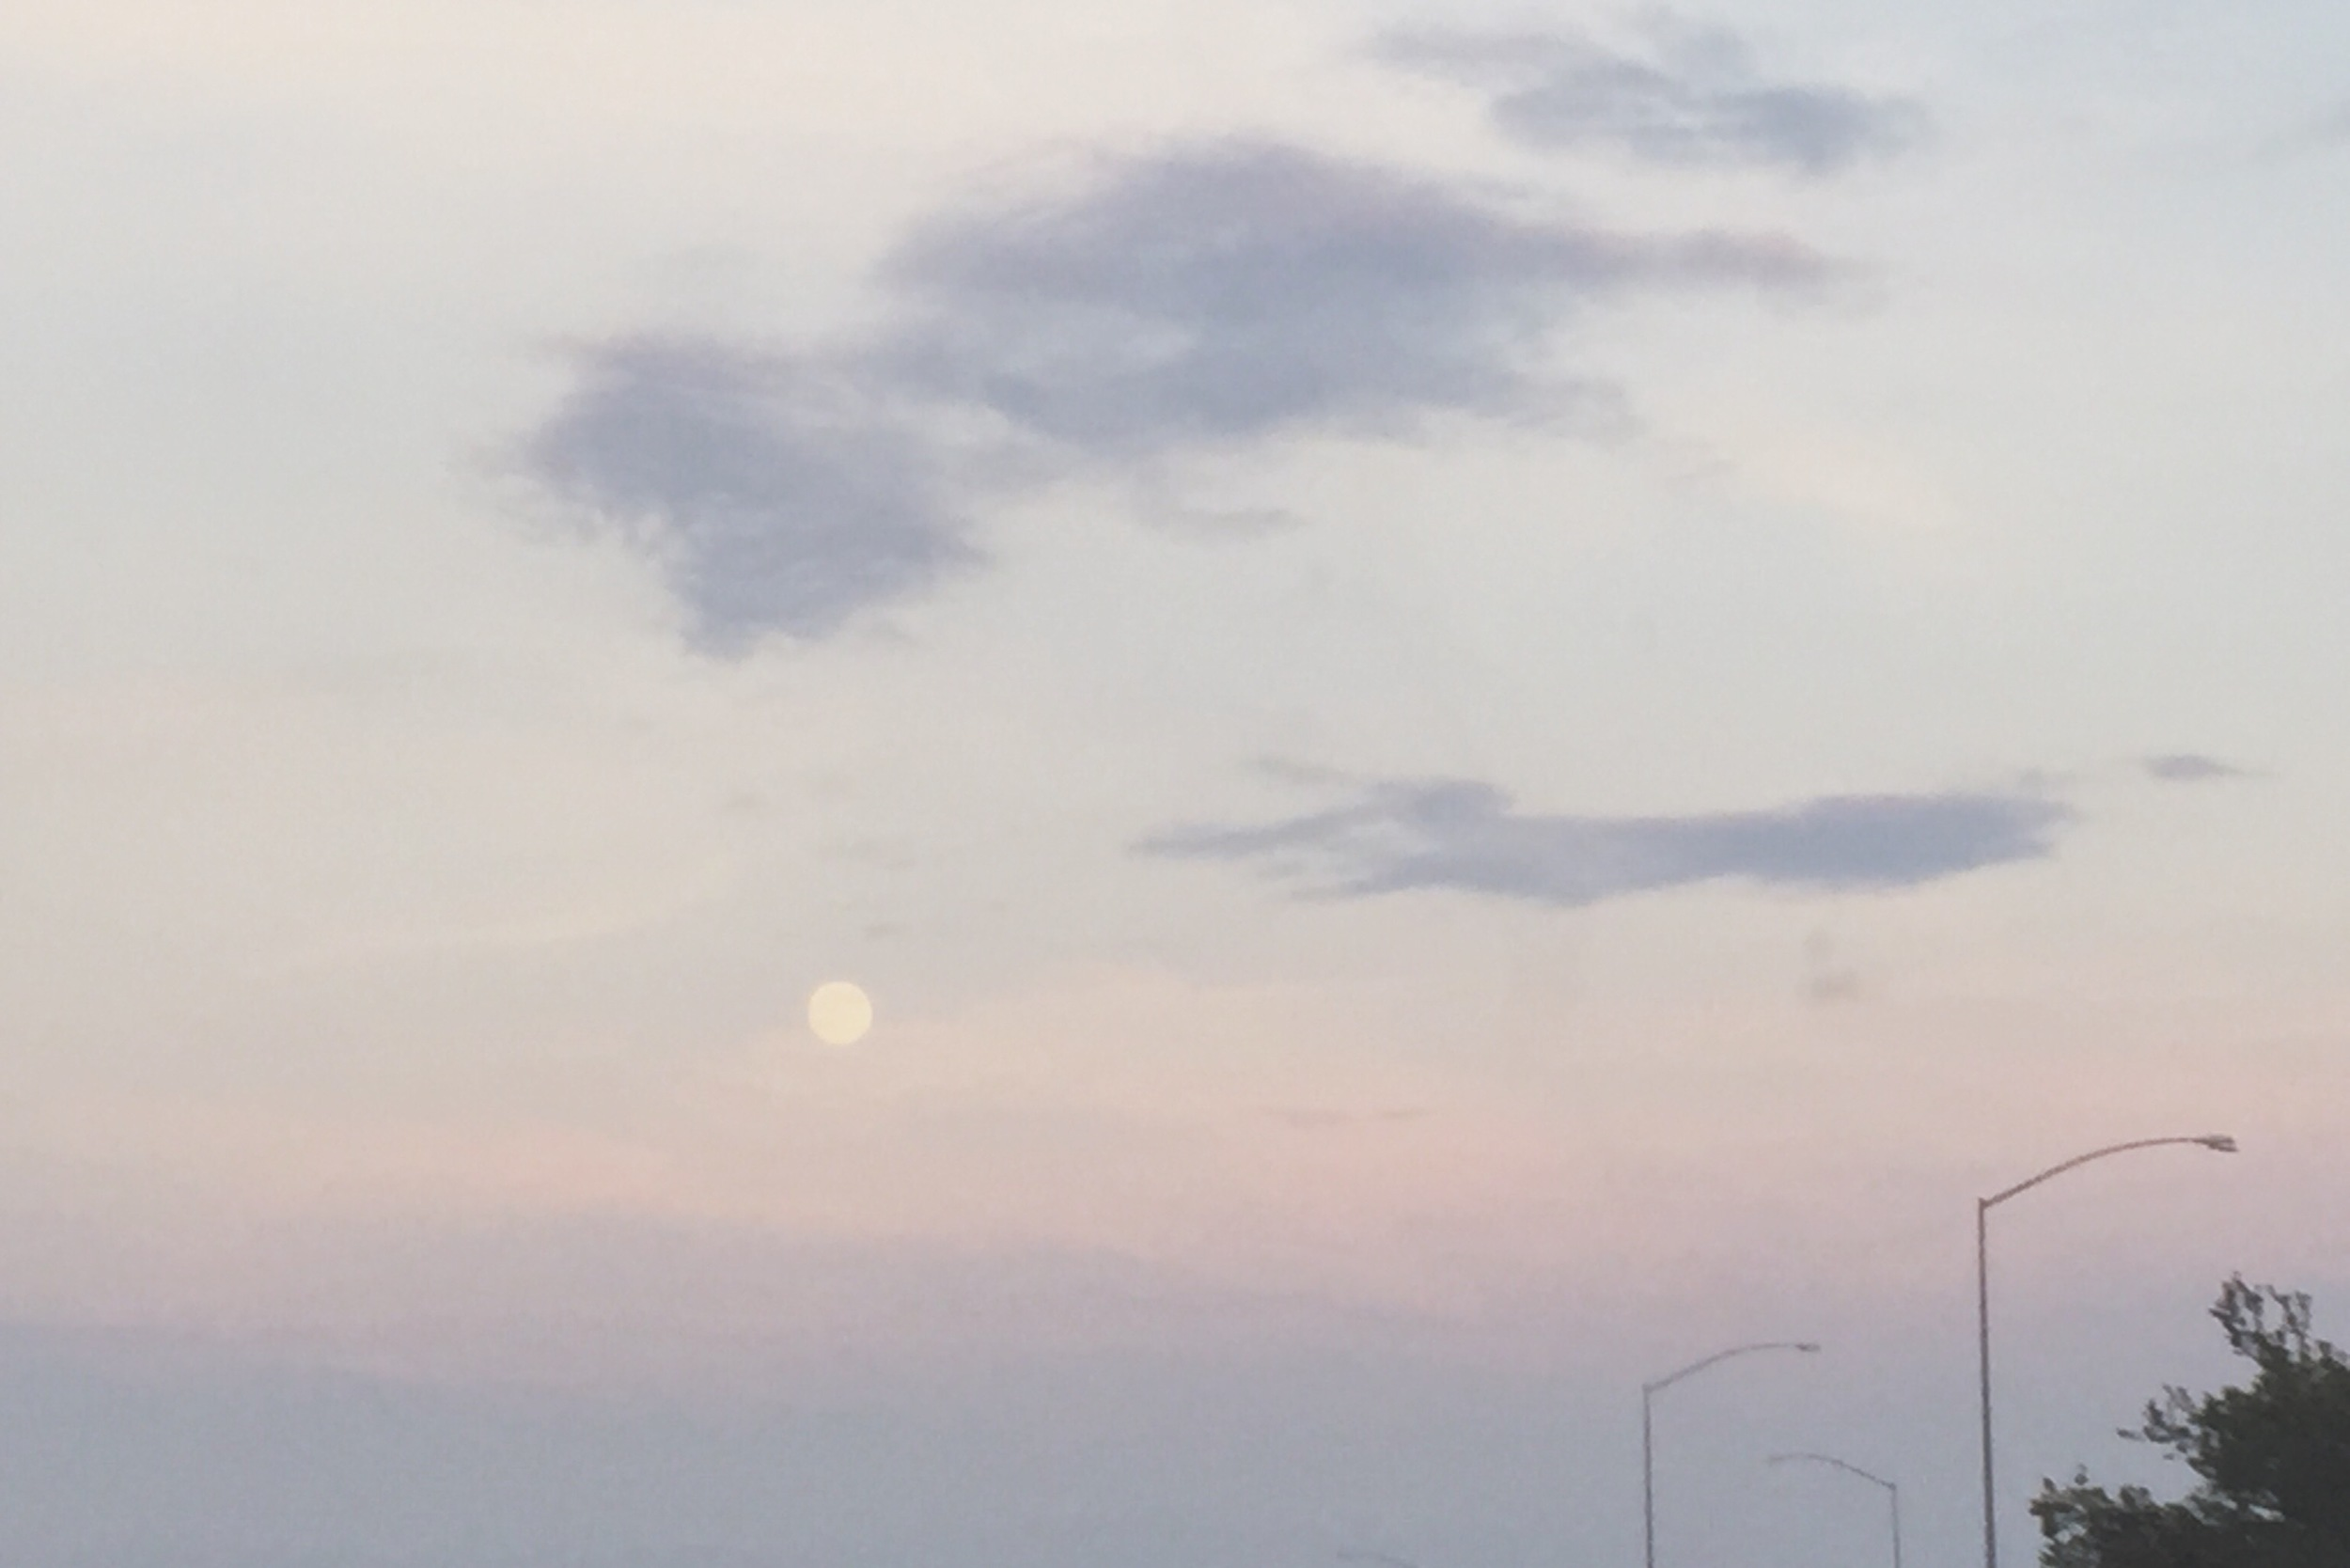 The Blue Moon taunting us toward the end of our incredibly long drive.